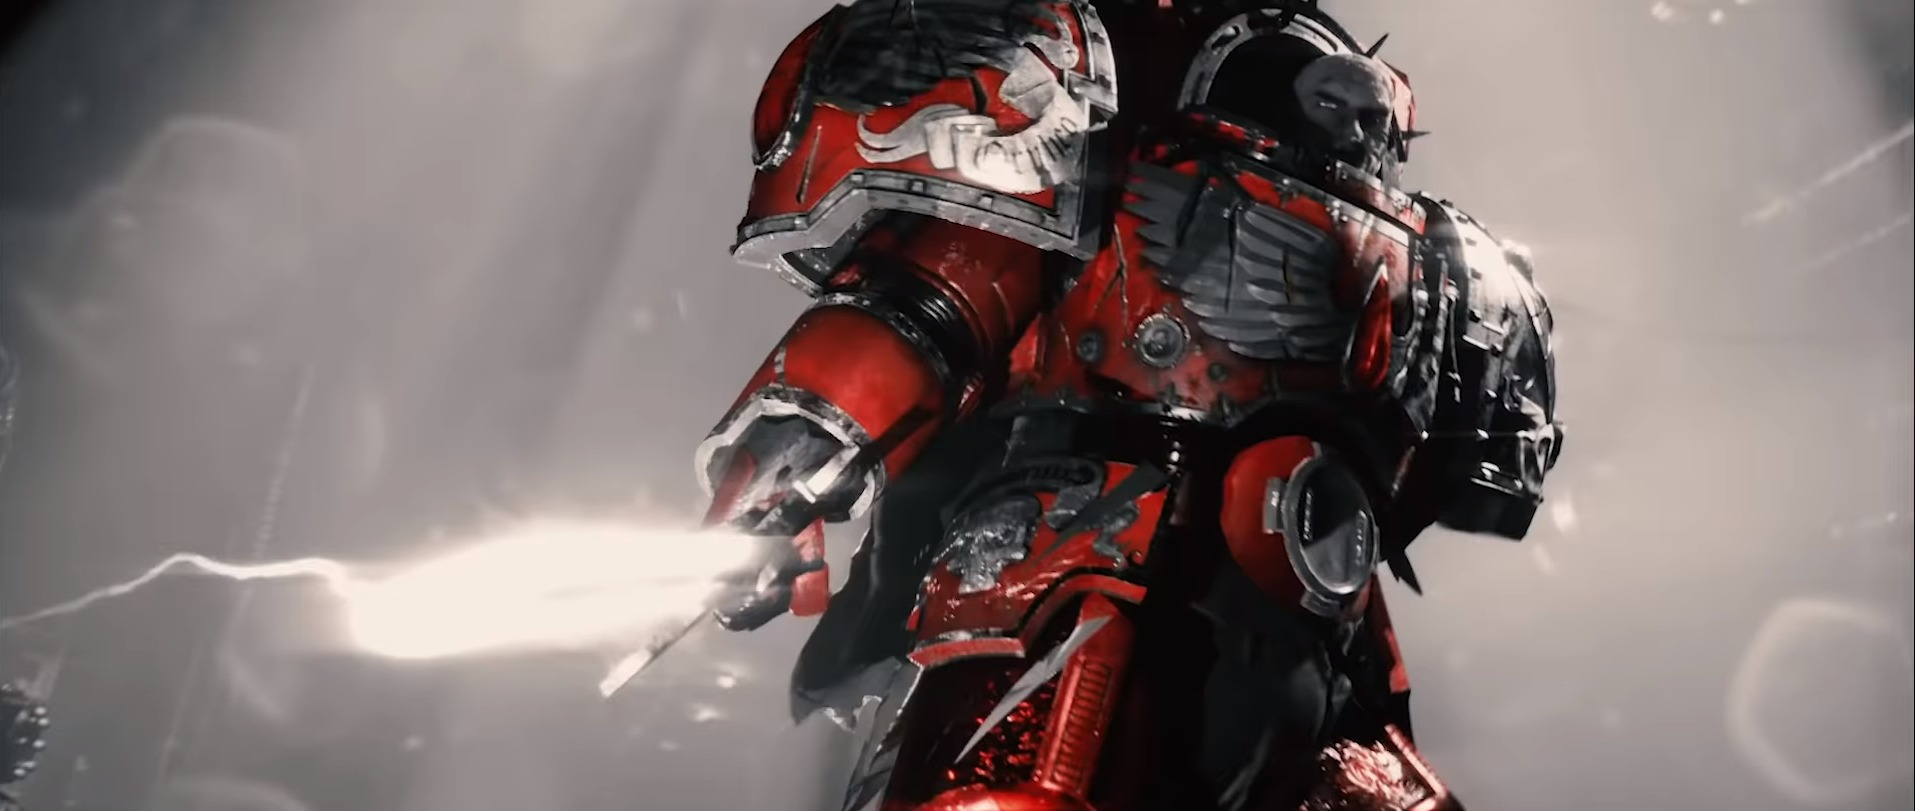 A Blood Angel Space Marine stands with an energy sword activated in the Warhammer 40k animated series